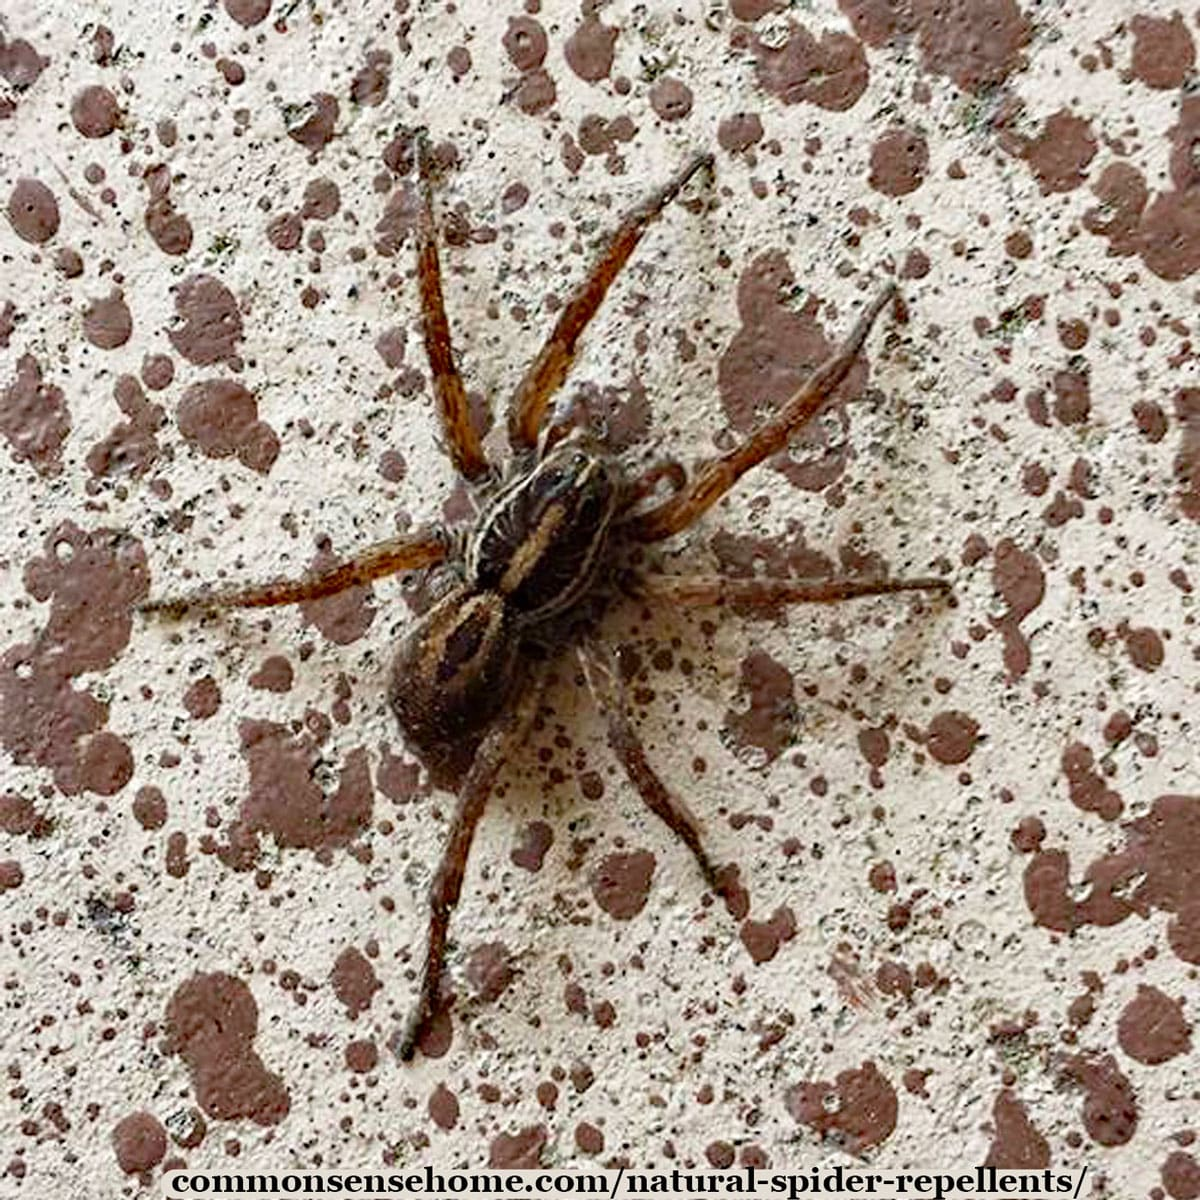 Natural Spider Repellents - 8 Ways to